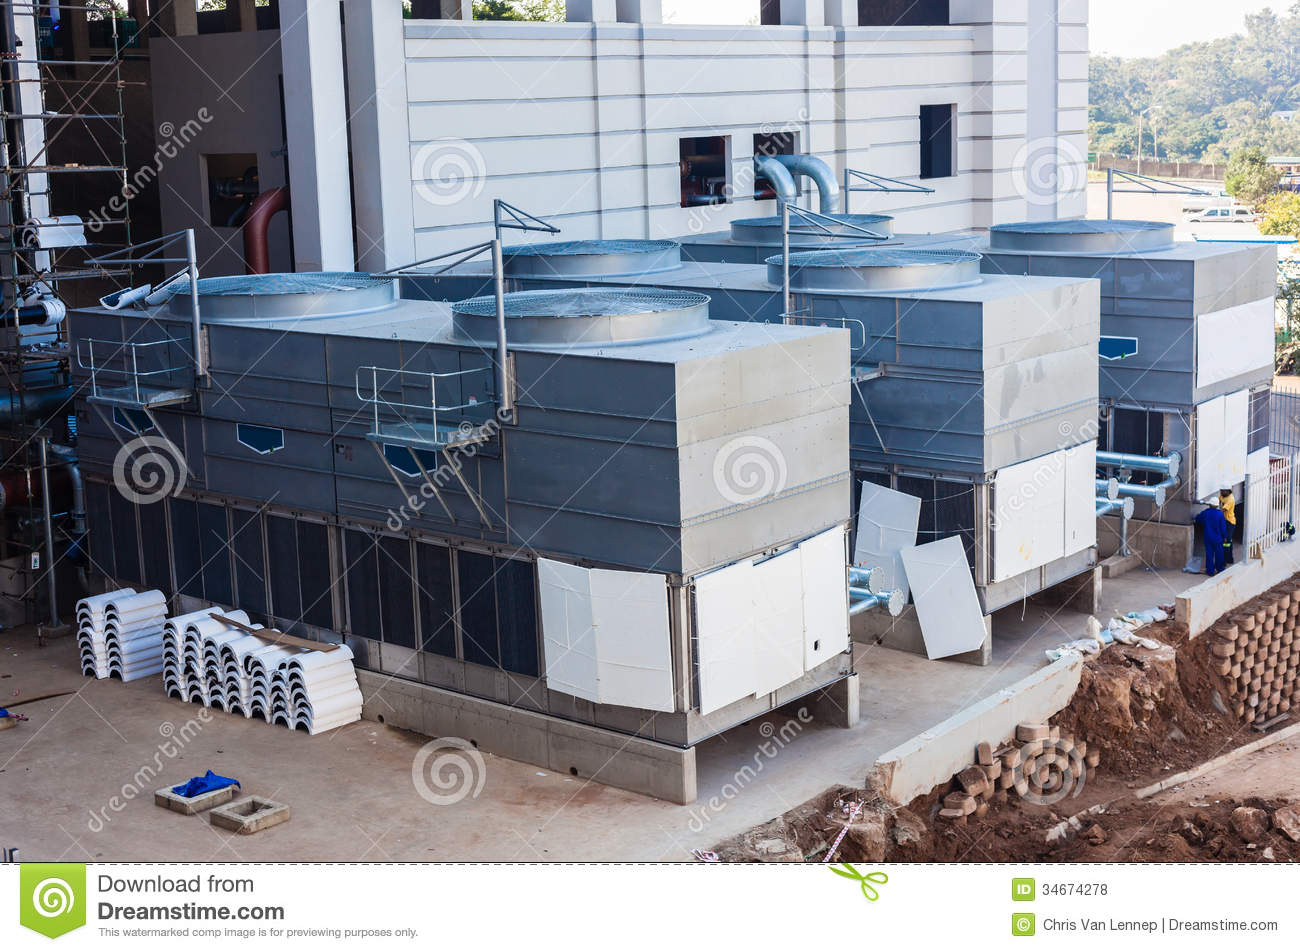 Air-Conditioning Units Large Editorial Stock Photo - Image of